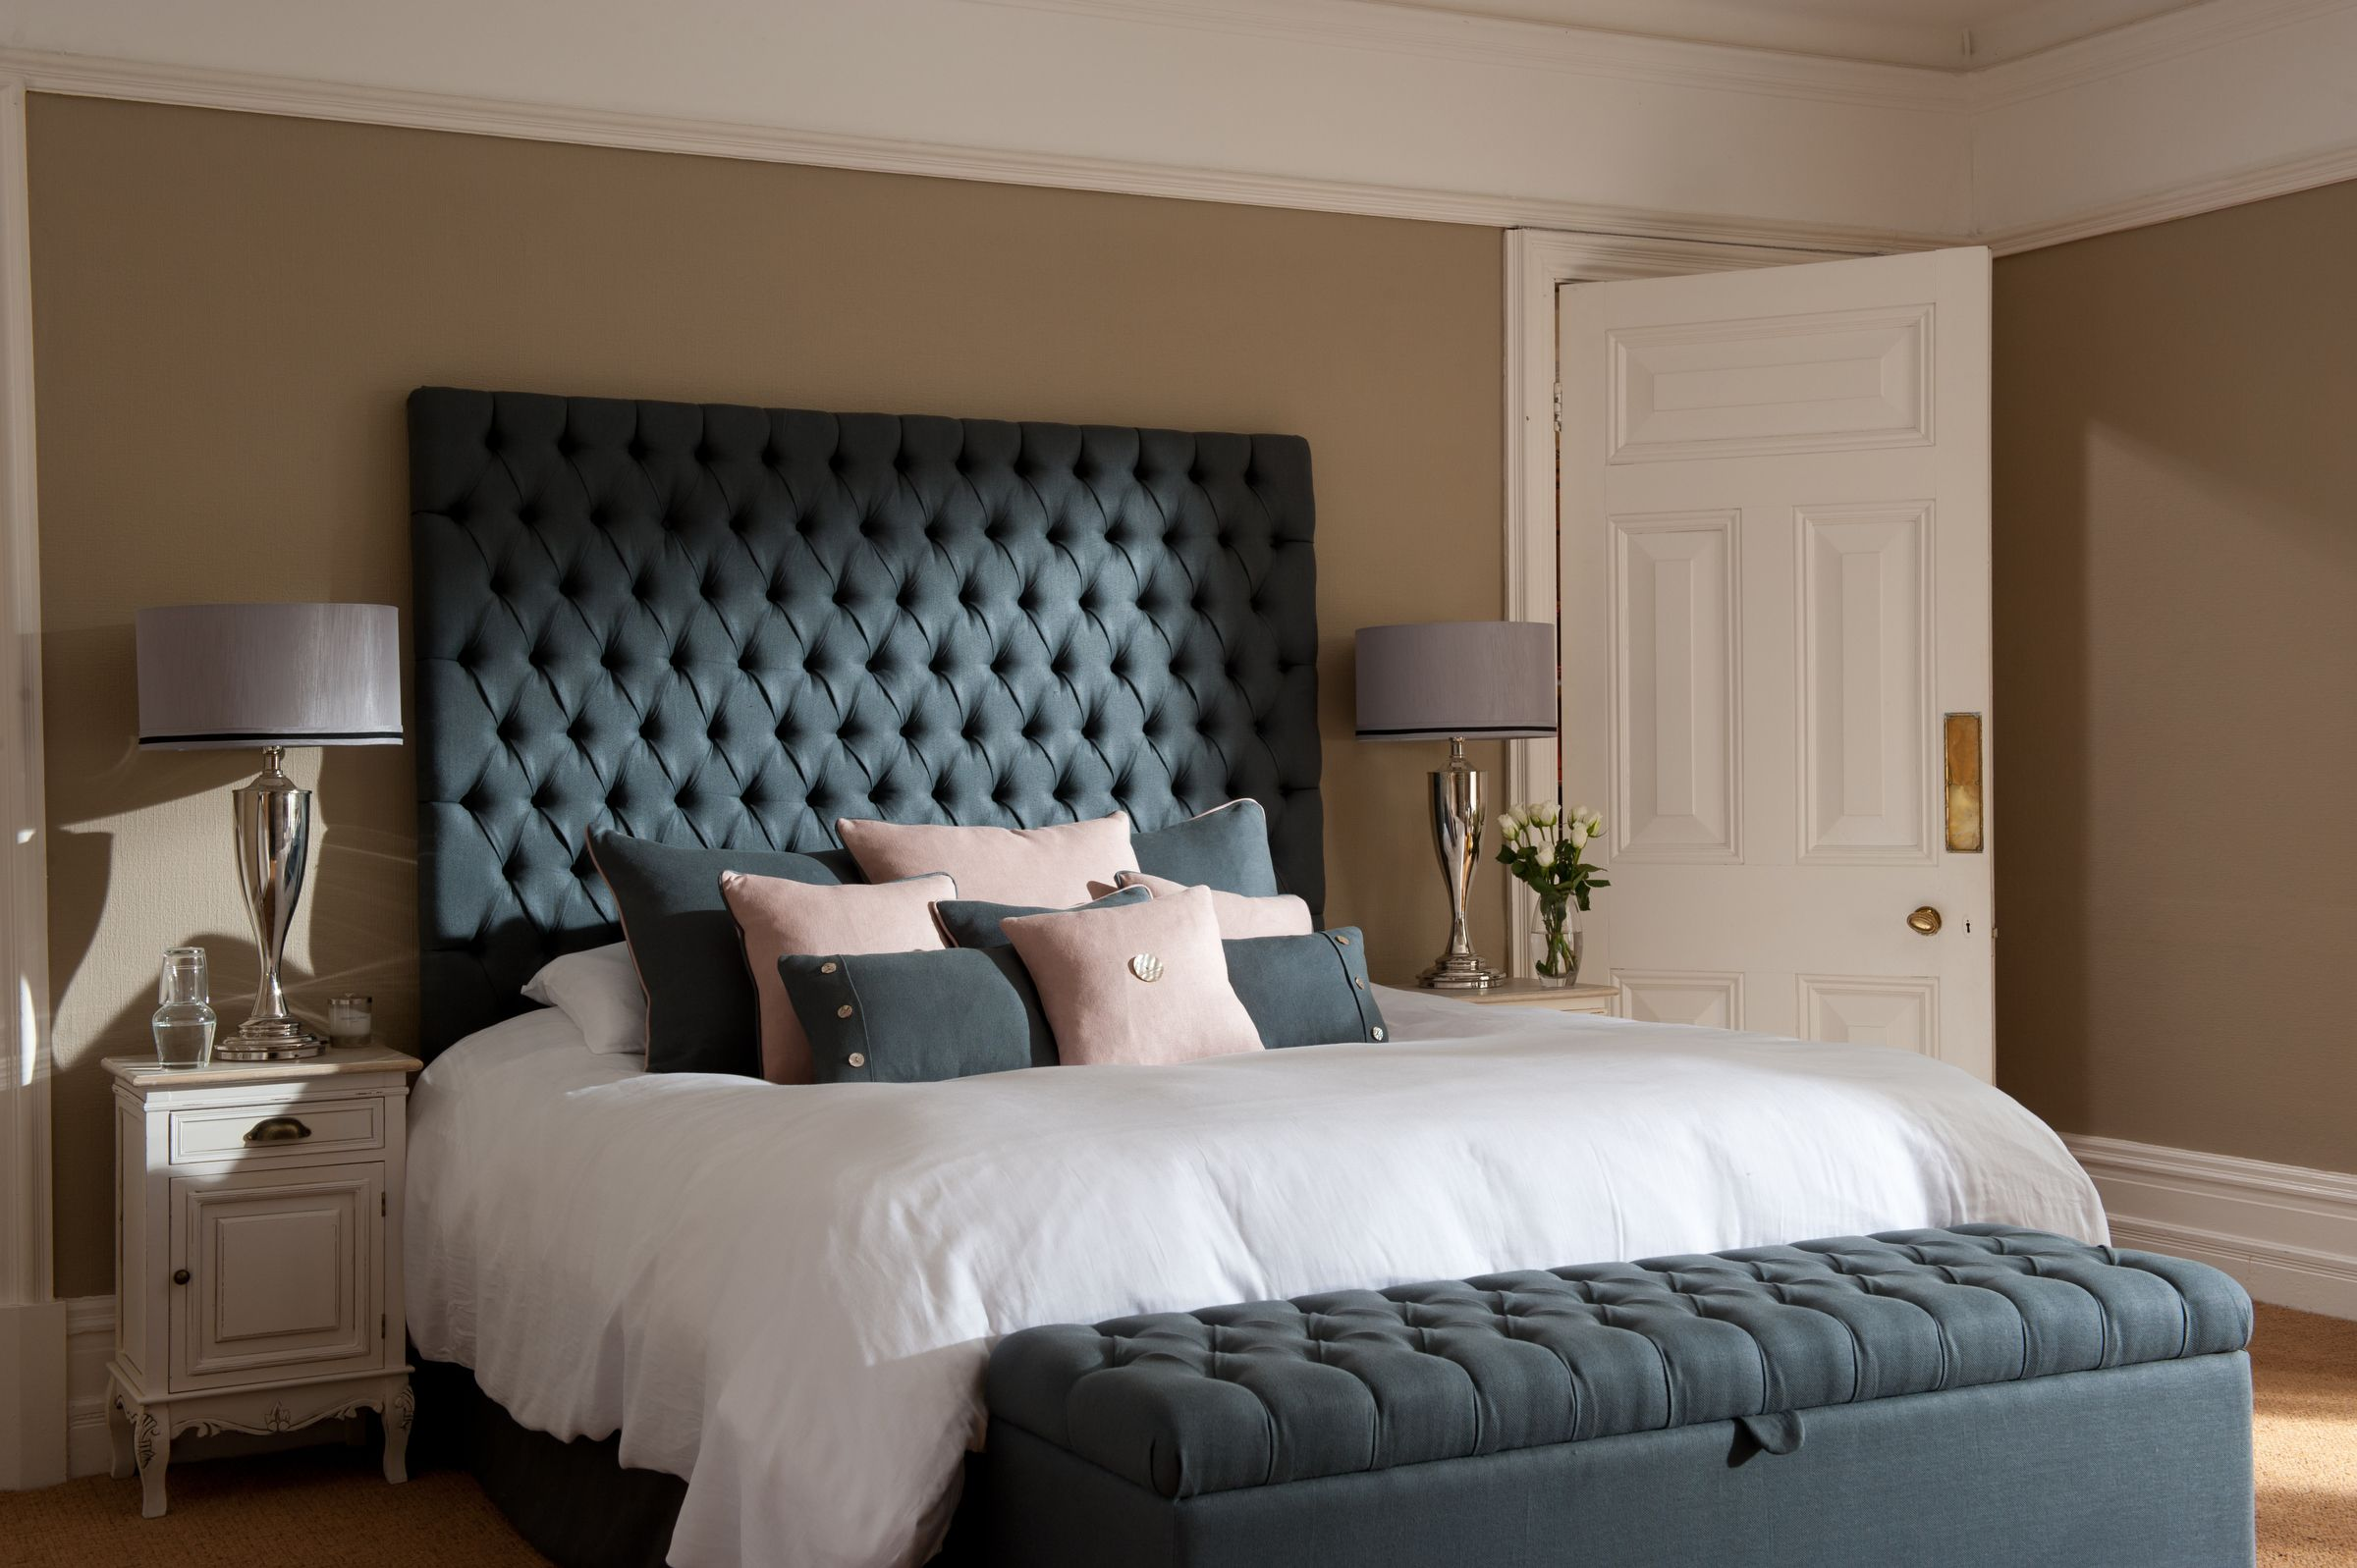 diamond tufted chesterfield style headboard and matching